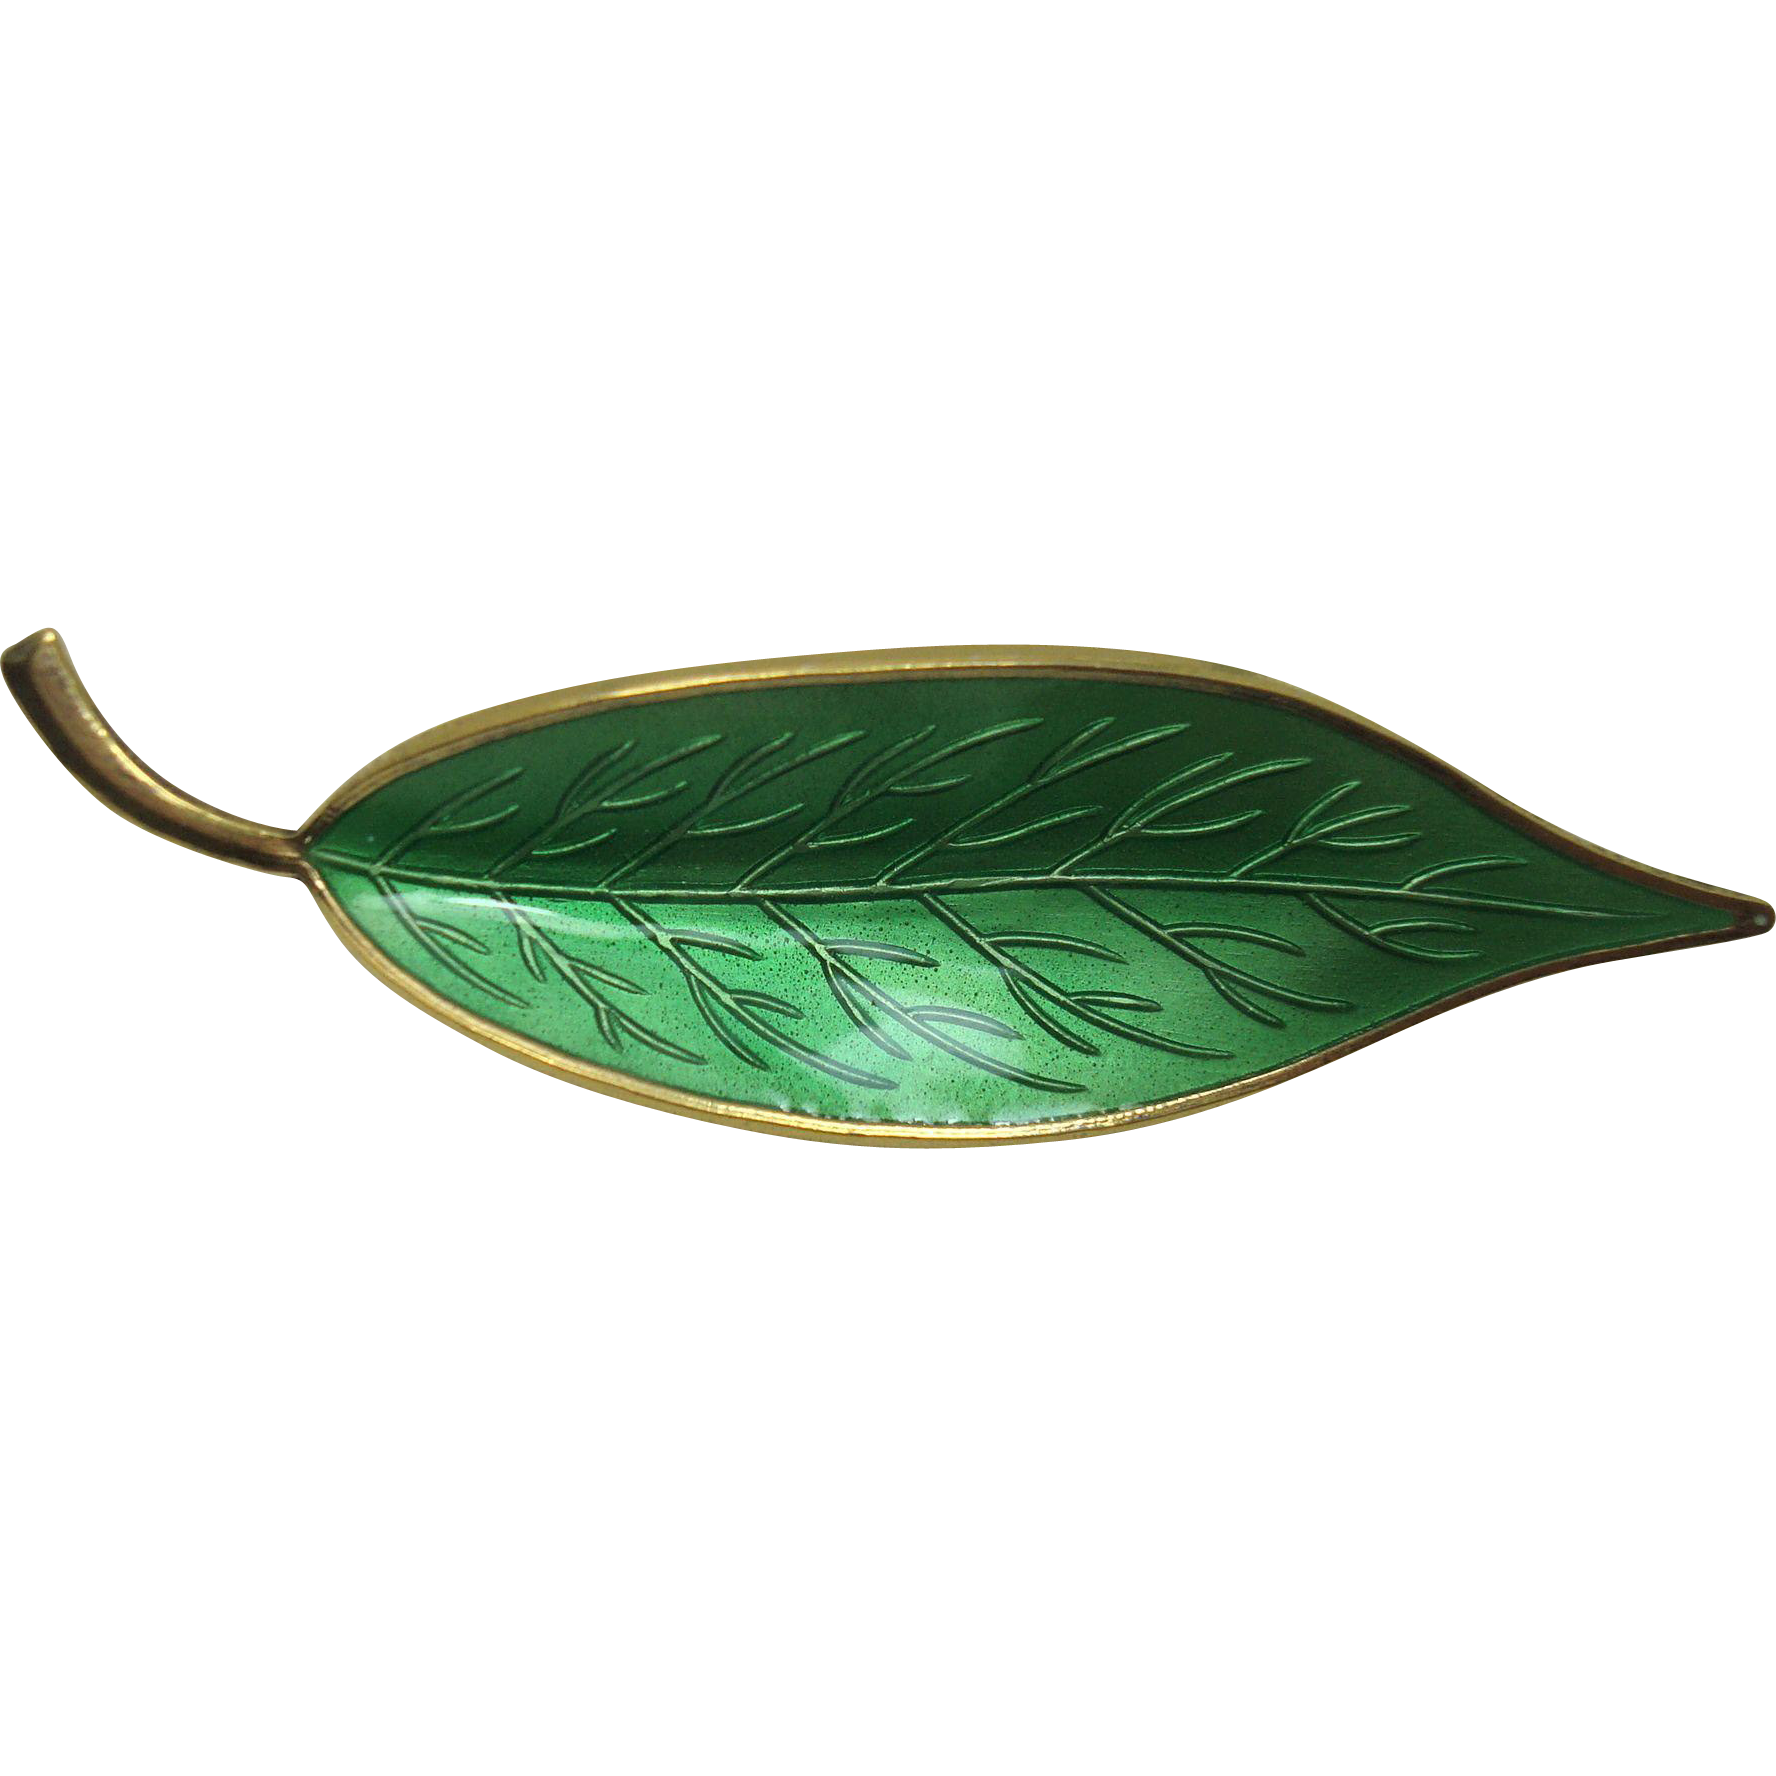 Meka Sterling Danish Guilloche Enameled Leaf Pin